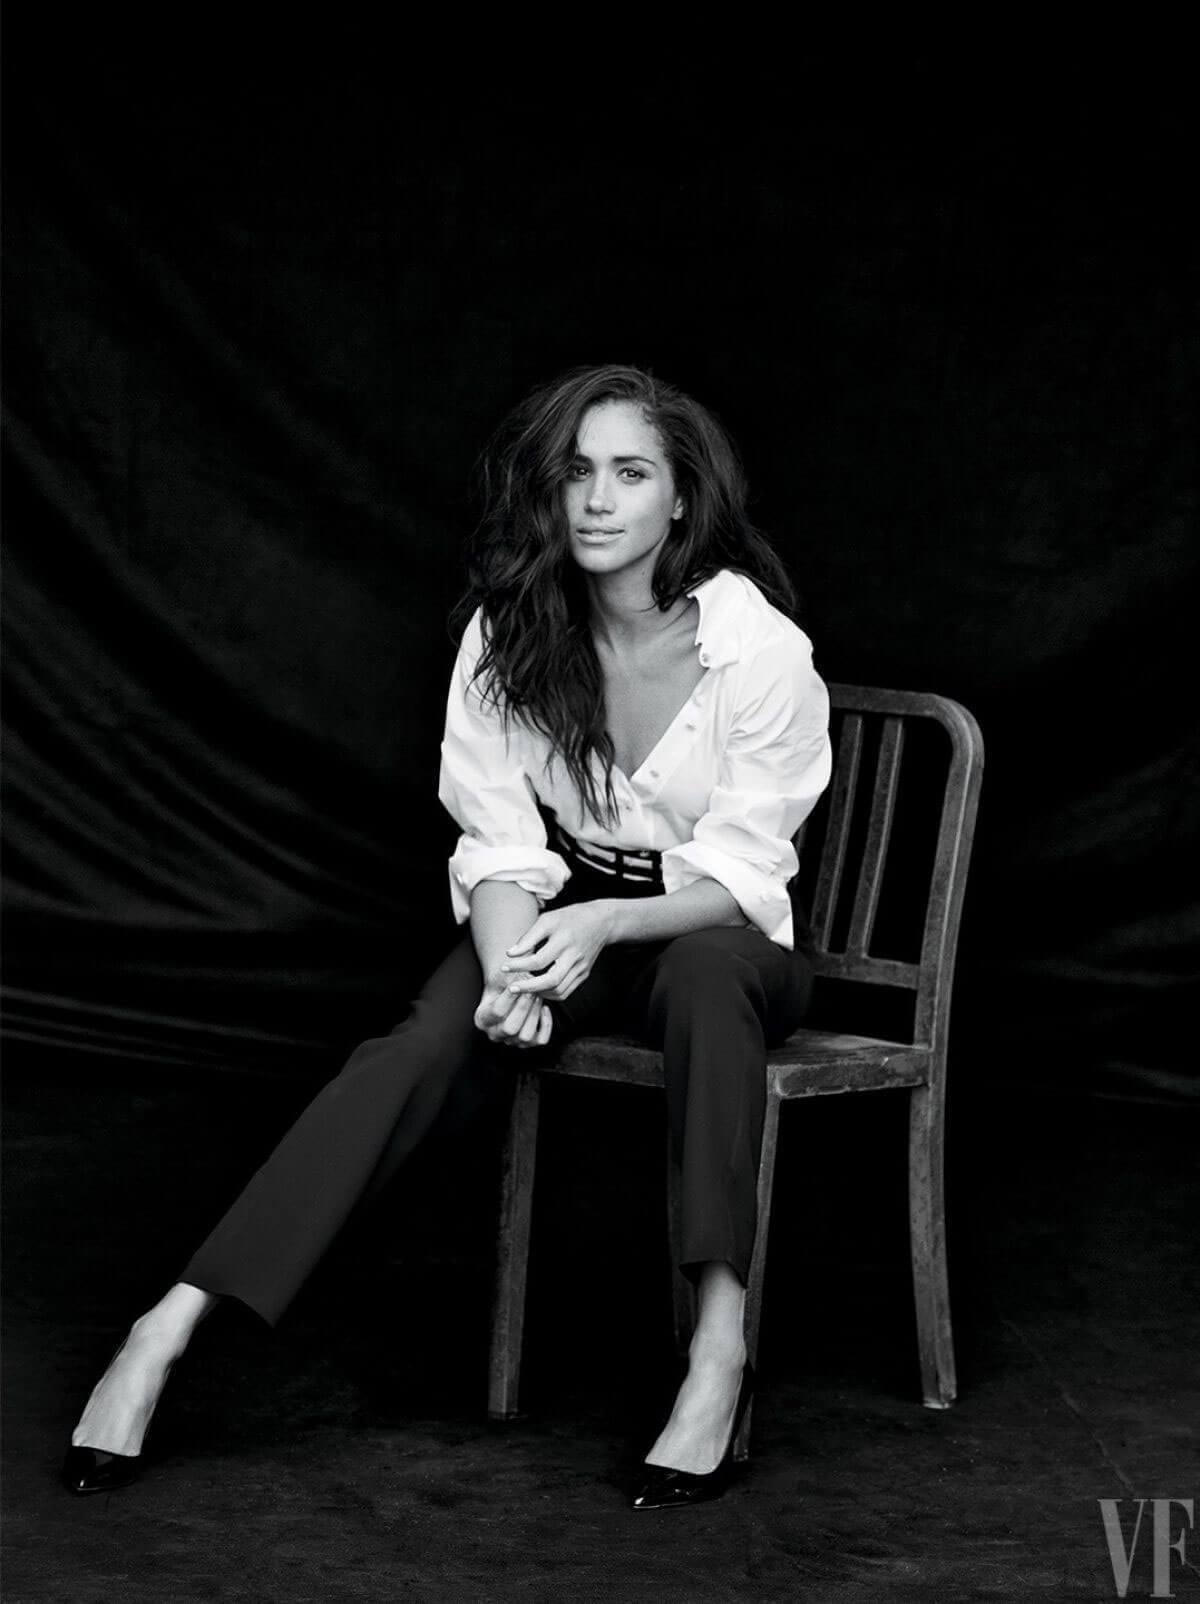 Meghan Markle Photos For Vanity Fair Magazine October